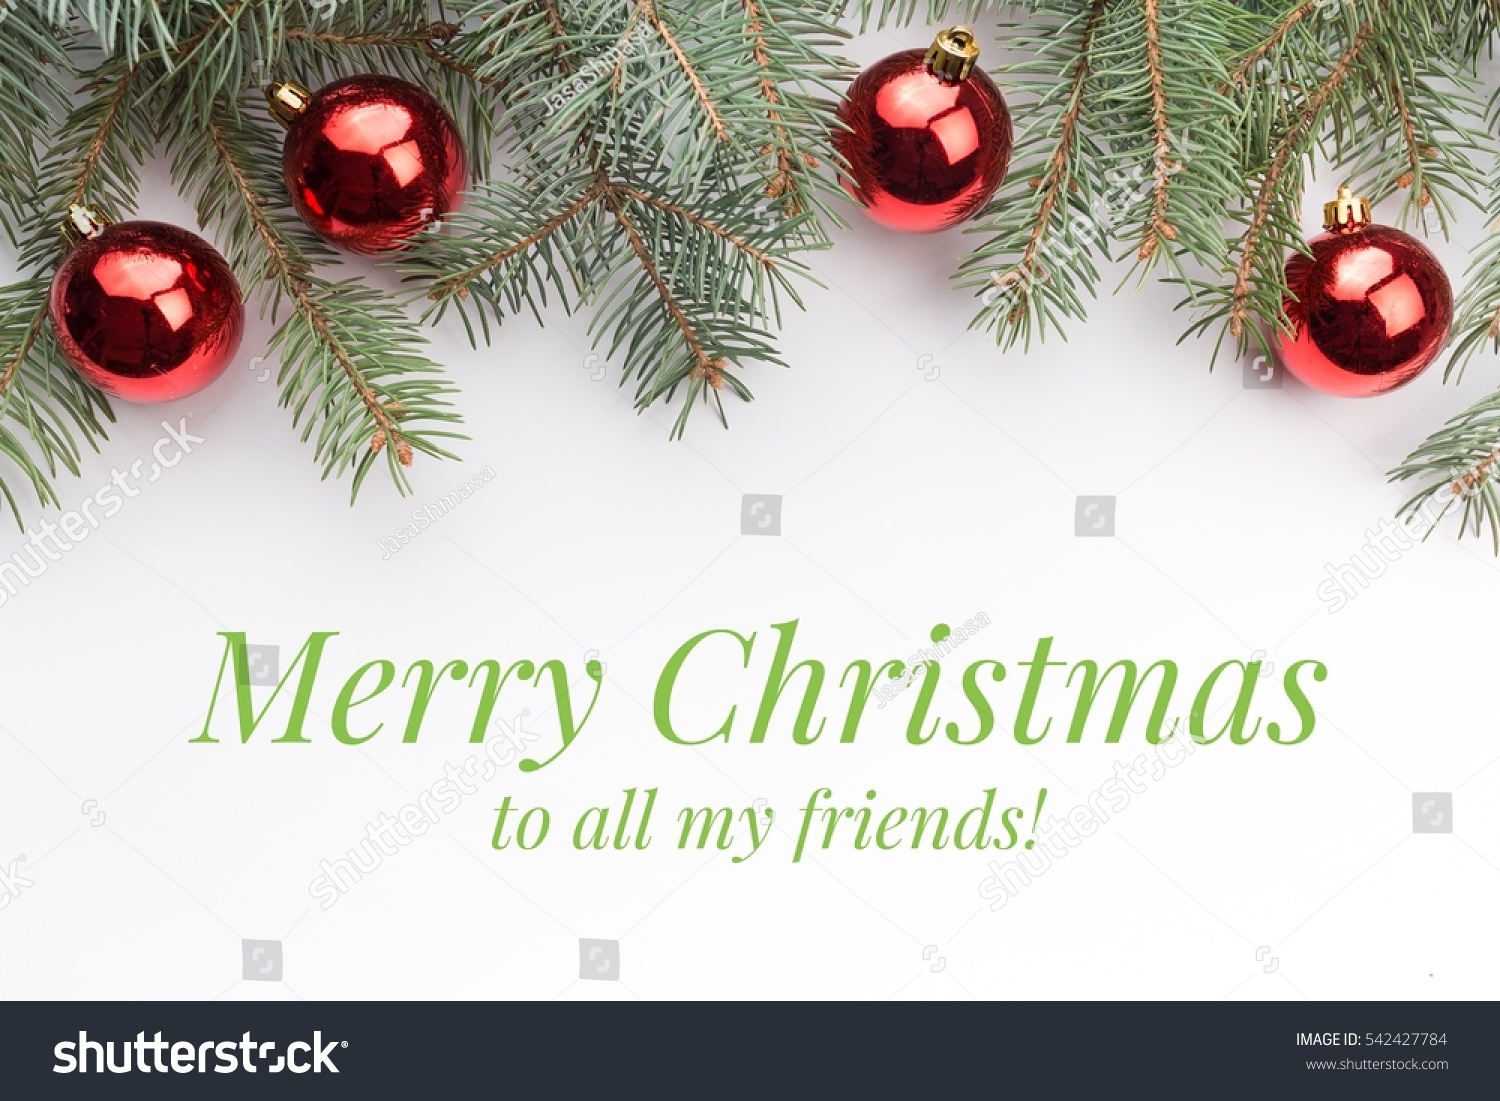 Merry Christmas To All.Background Christmas Decorations Message Merry Christmas